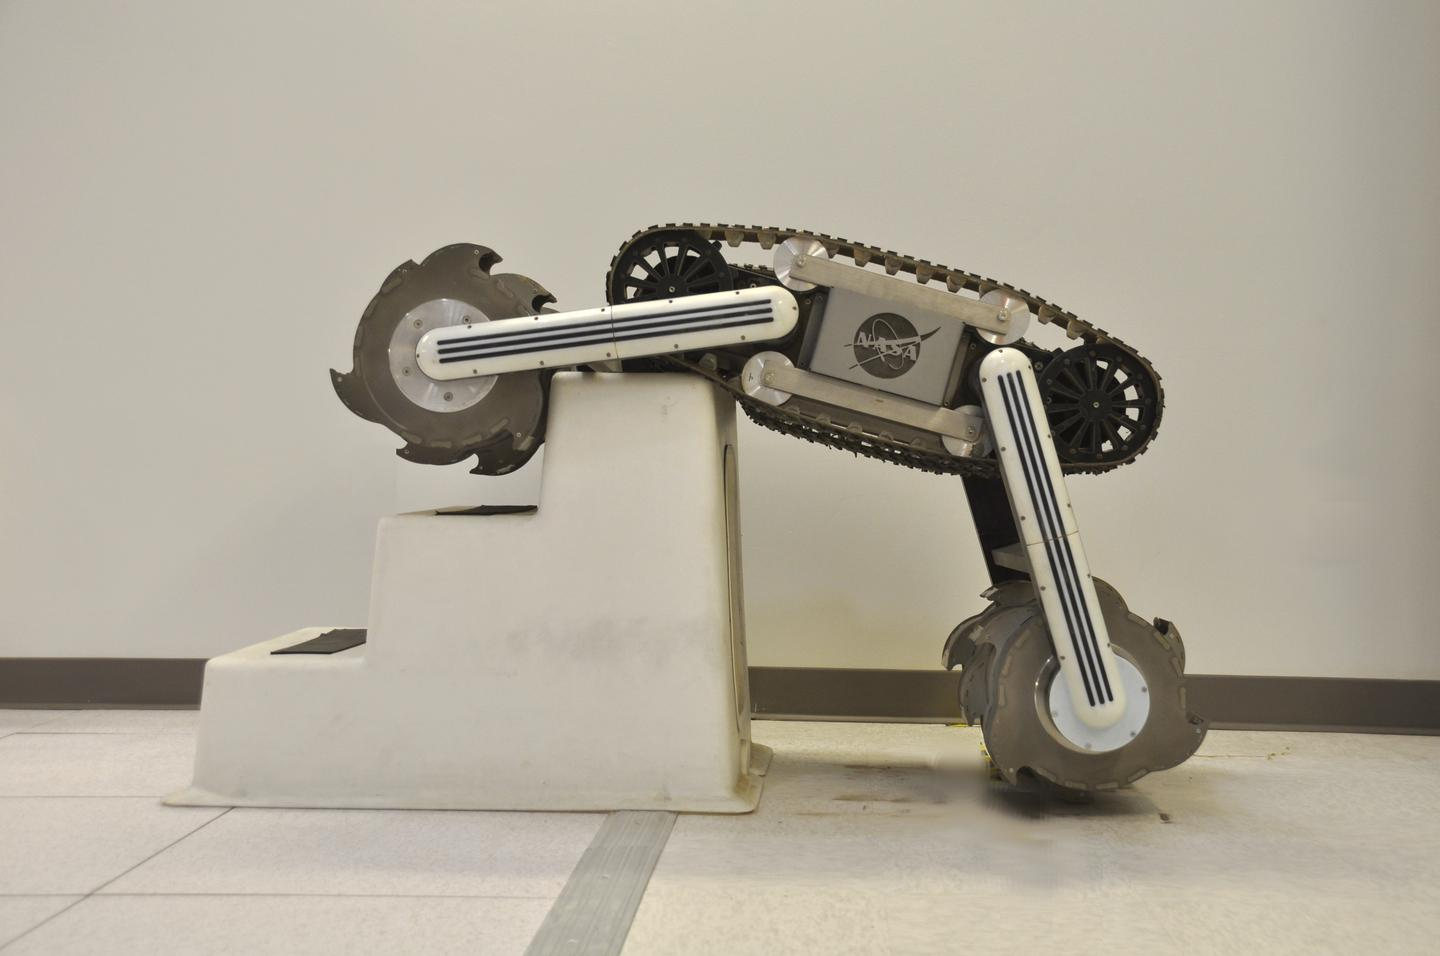 The RASSOR can climb over a large obstacle, such as a boulder on the moon - engineers on Earth used a stepping stool to challenge the robot (Photo: NASA)